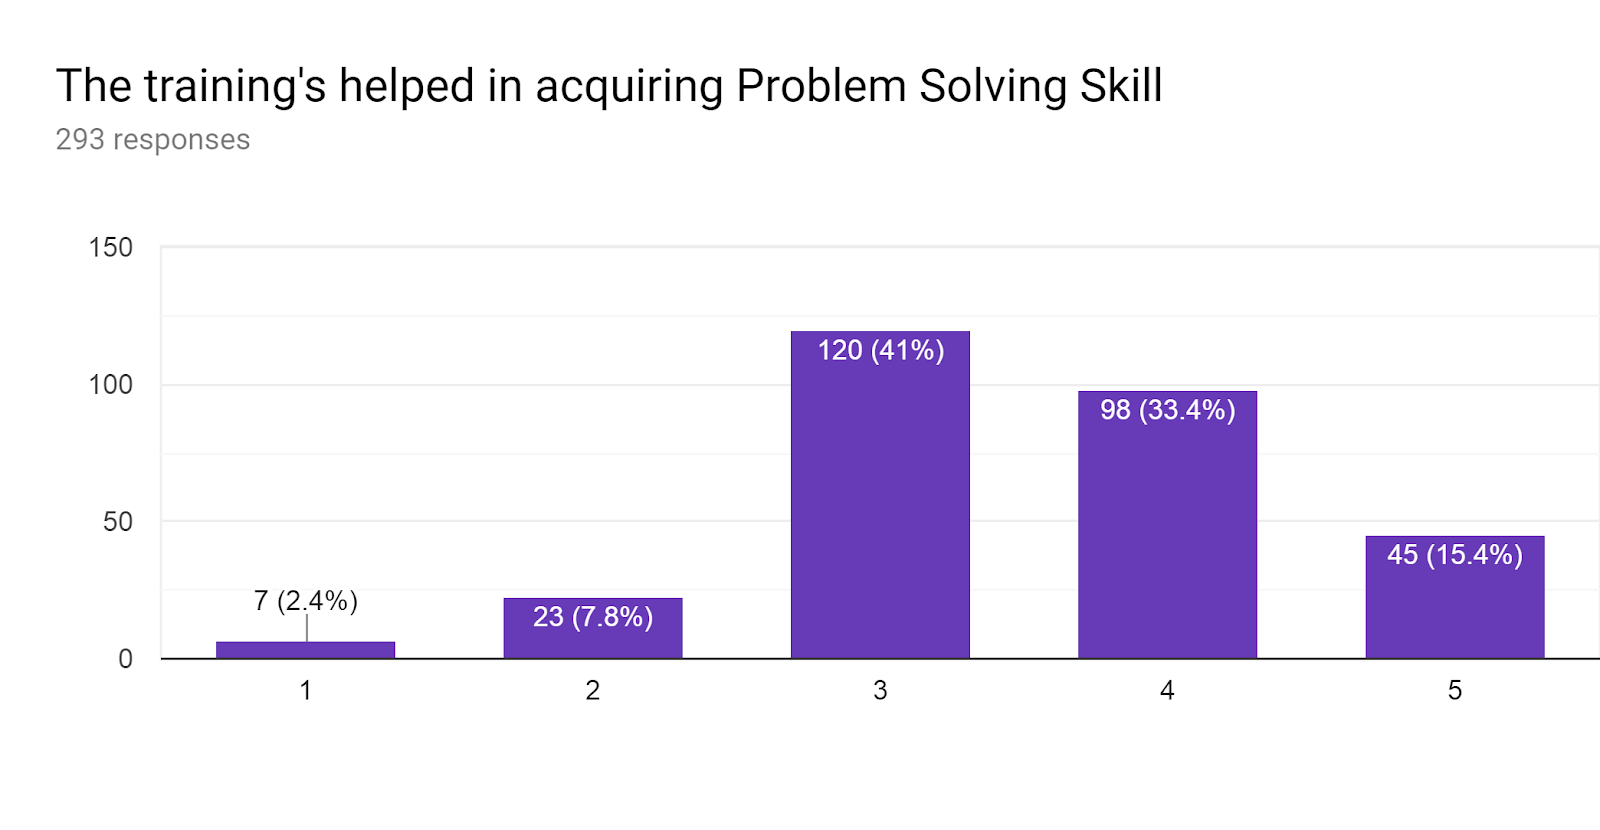 Forms response chart. Question title: The training's helped in acquiring Problem Solving Skill . Number of responses: 293 responses.